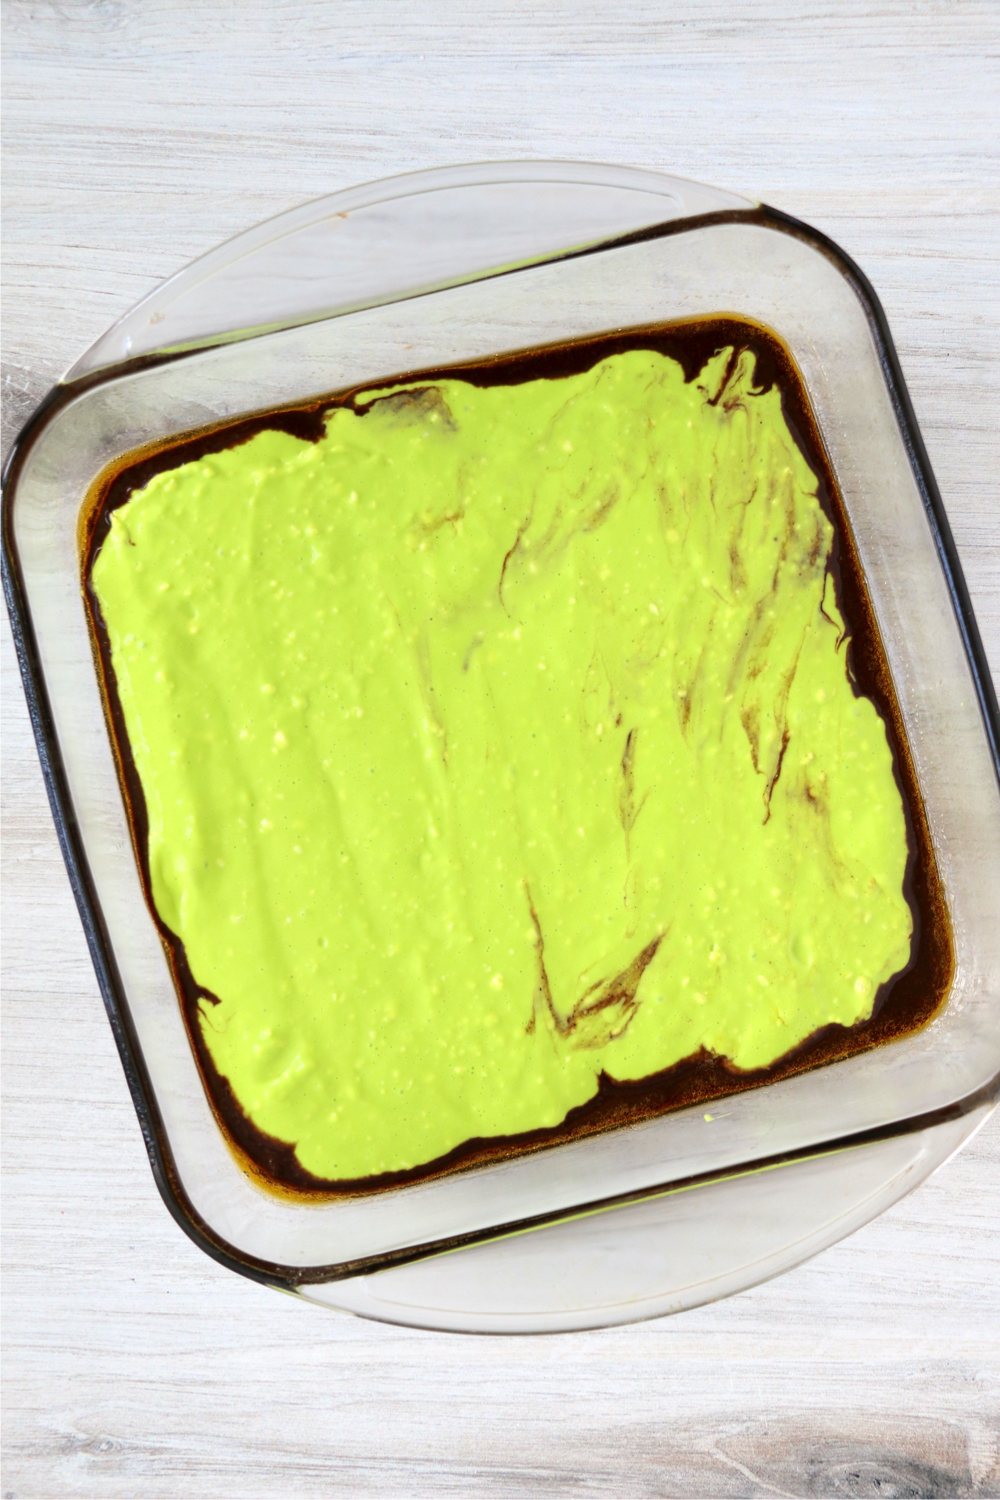 Neon green cream cheese layer on top of brownie layer in baking dish